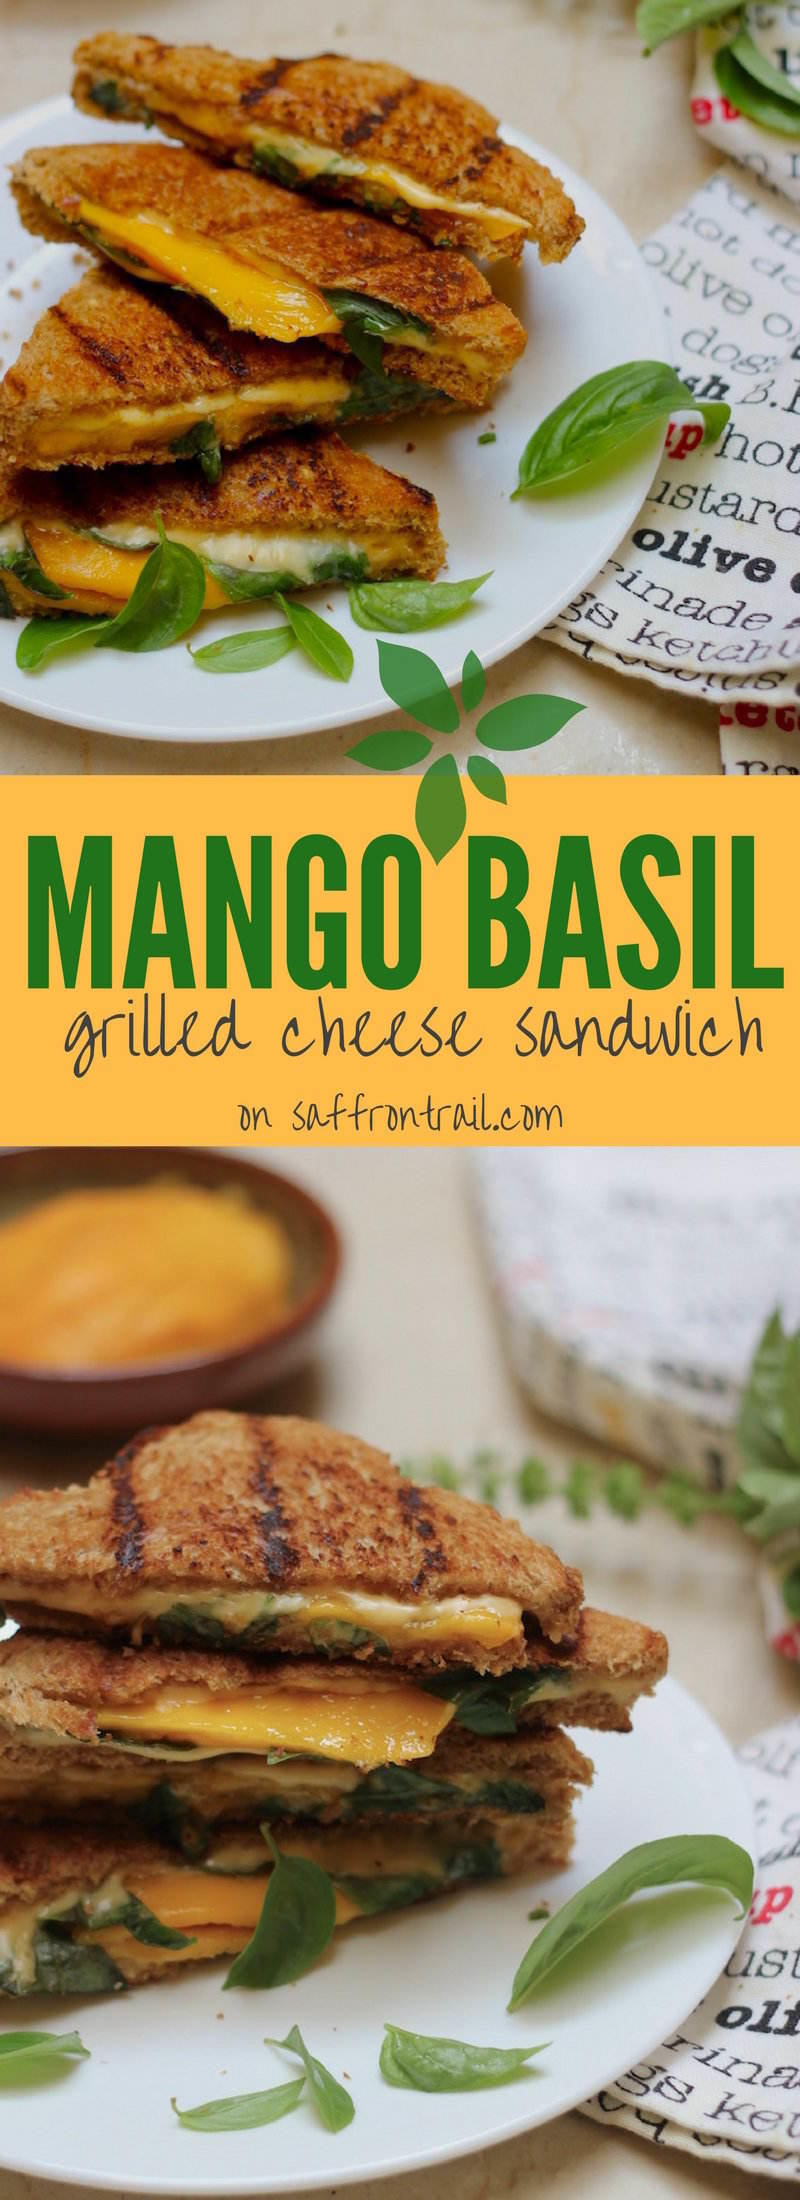 Mango Basil Grilled Cheese Sandwich - a sandwich with the unusual flavour combination of sweet ripe mangoes, fresh Italian basil, cheese and a hot sauce to give it that kick!